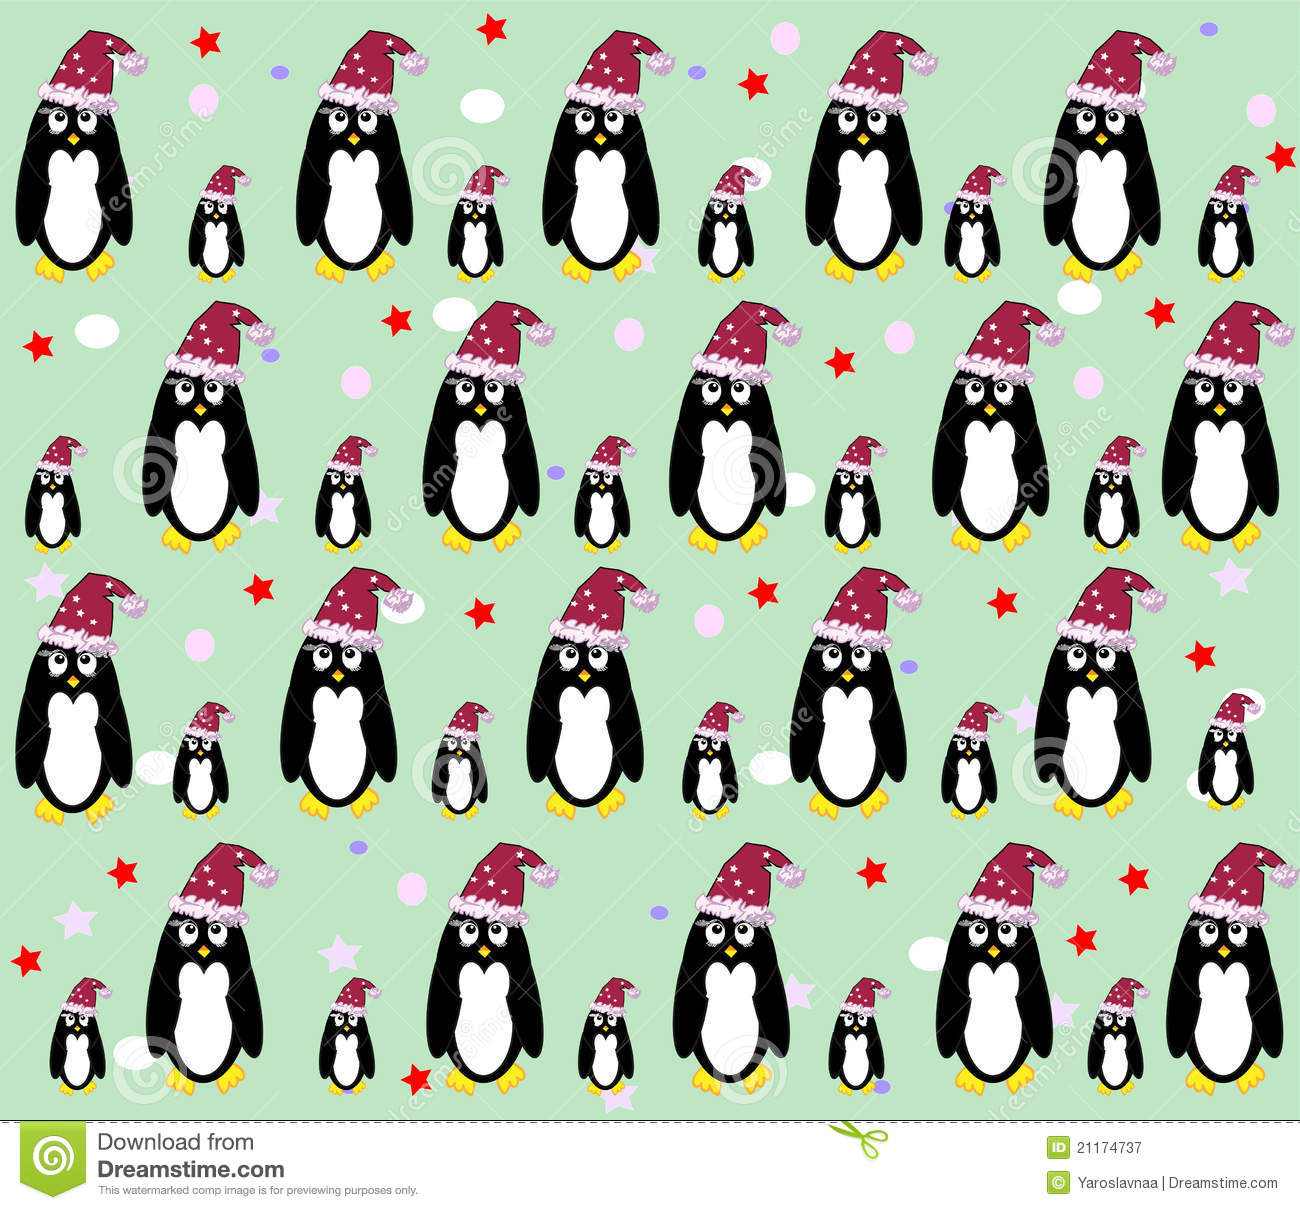 Penguin background vector stock vector. Illustration of cute - 21174737